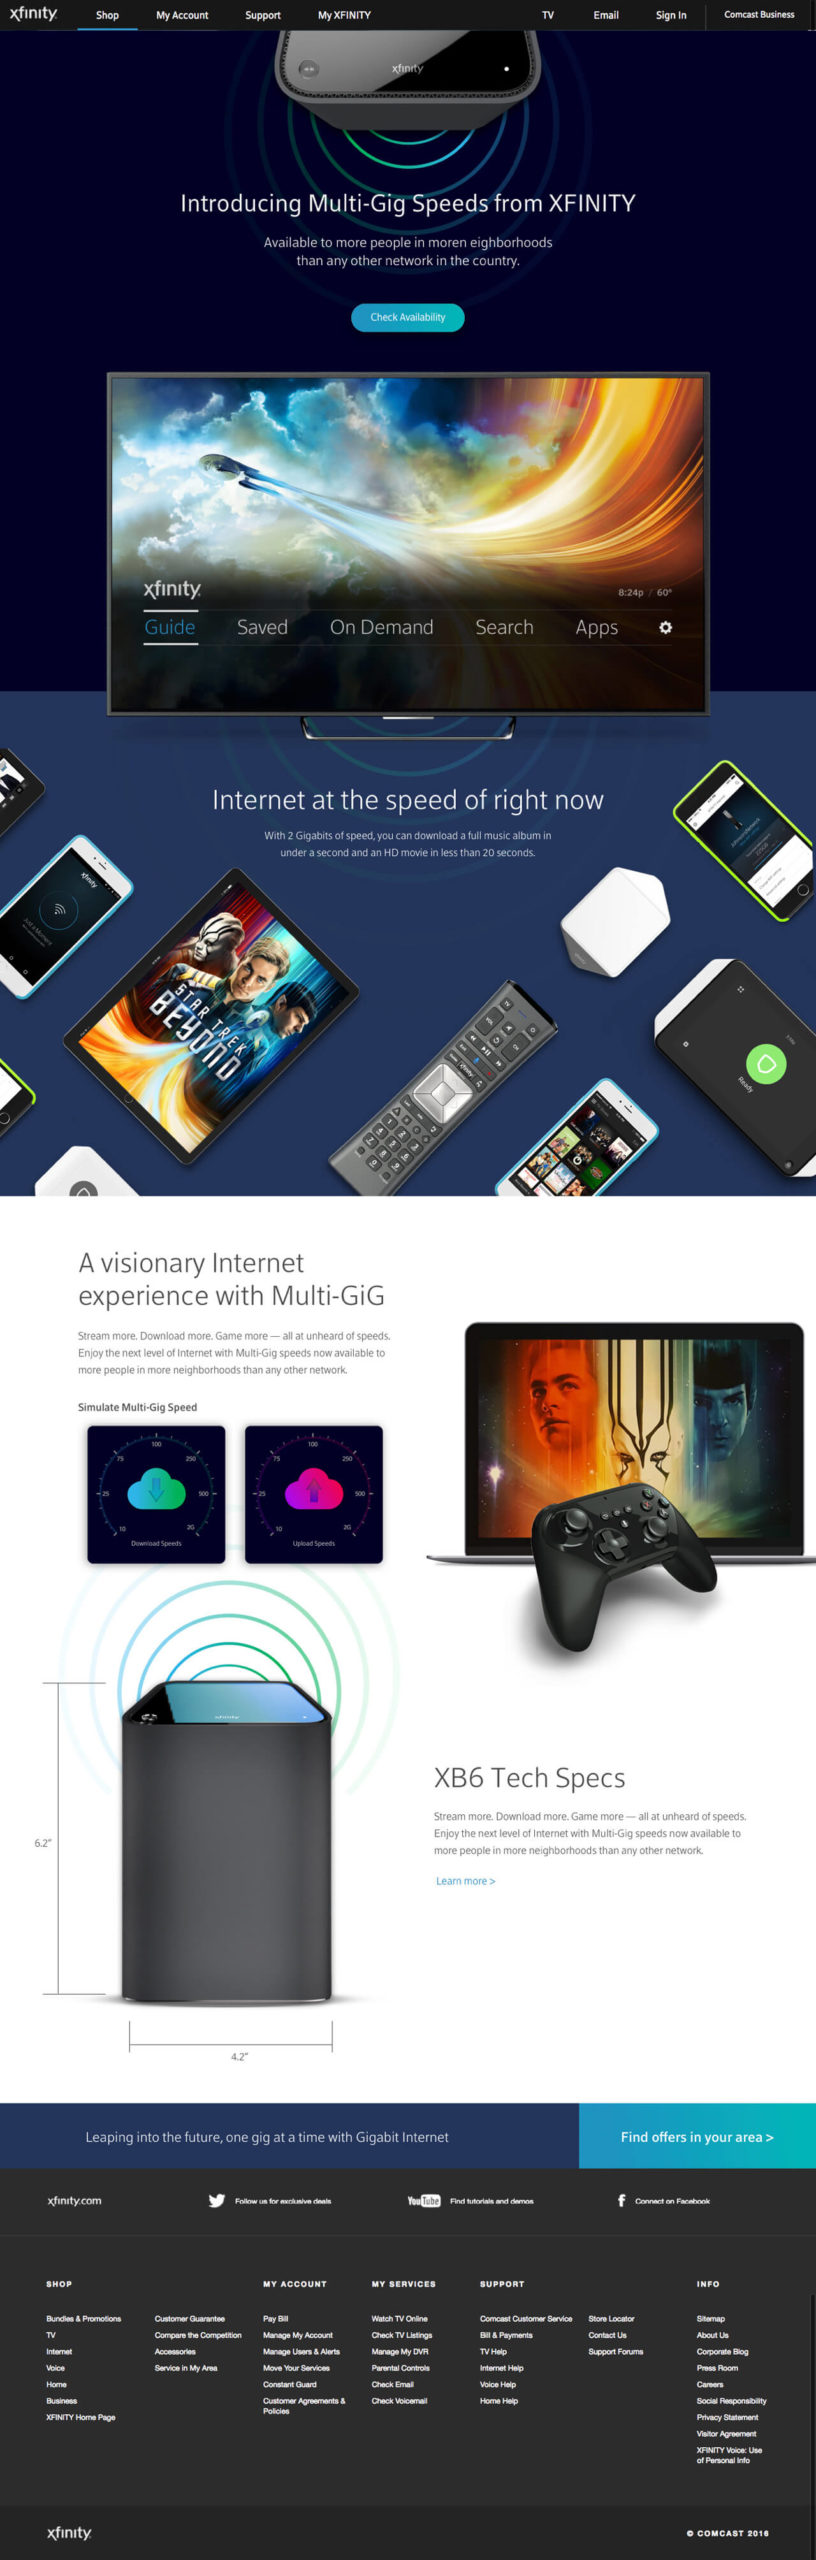 xfinity-gig-speed-internet-web-shop-experience-design-1